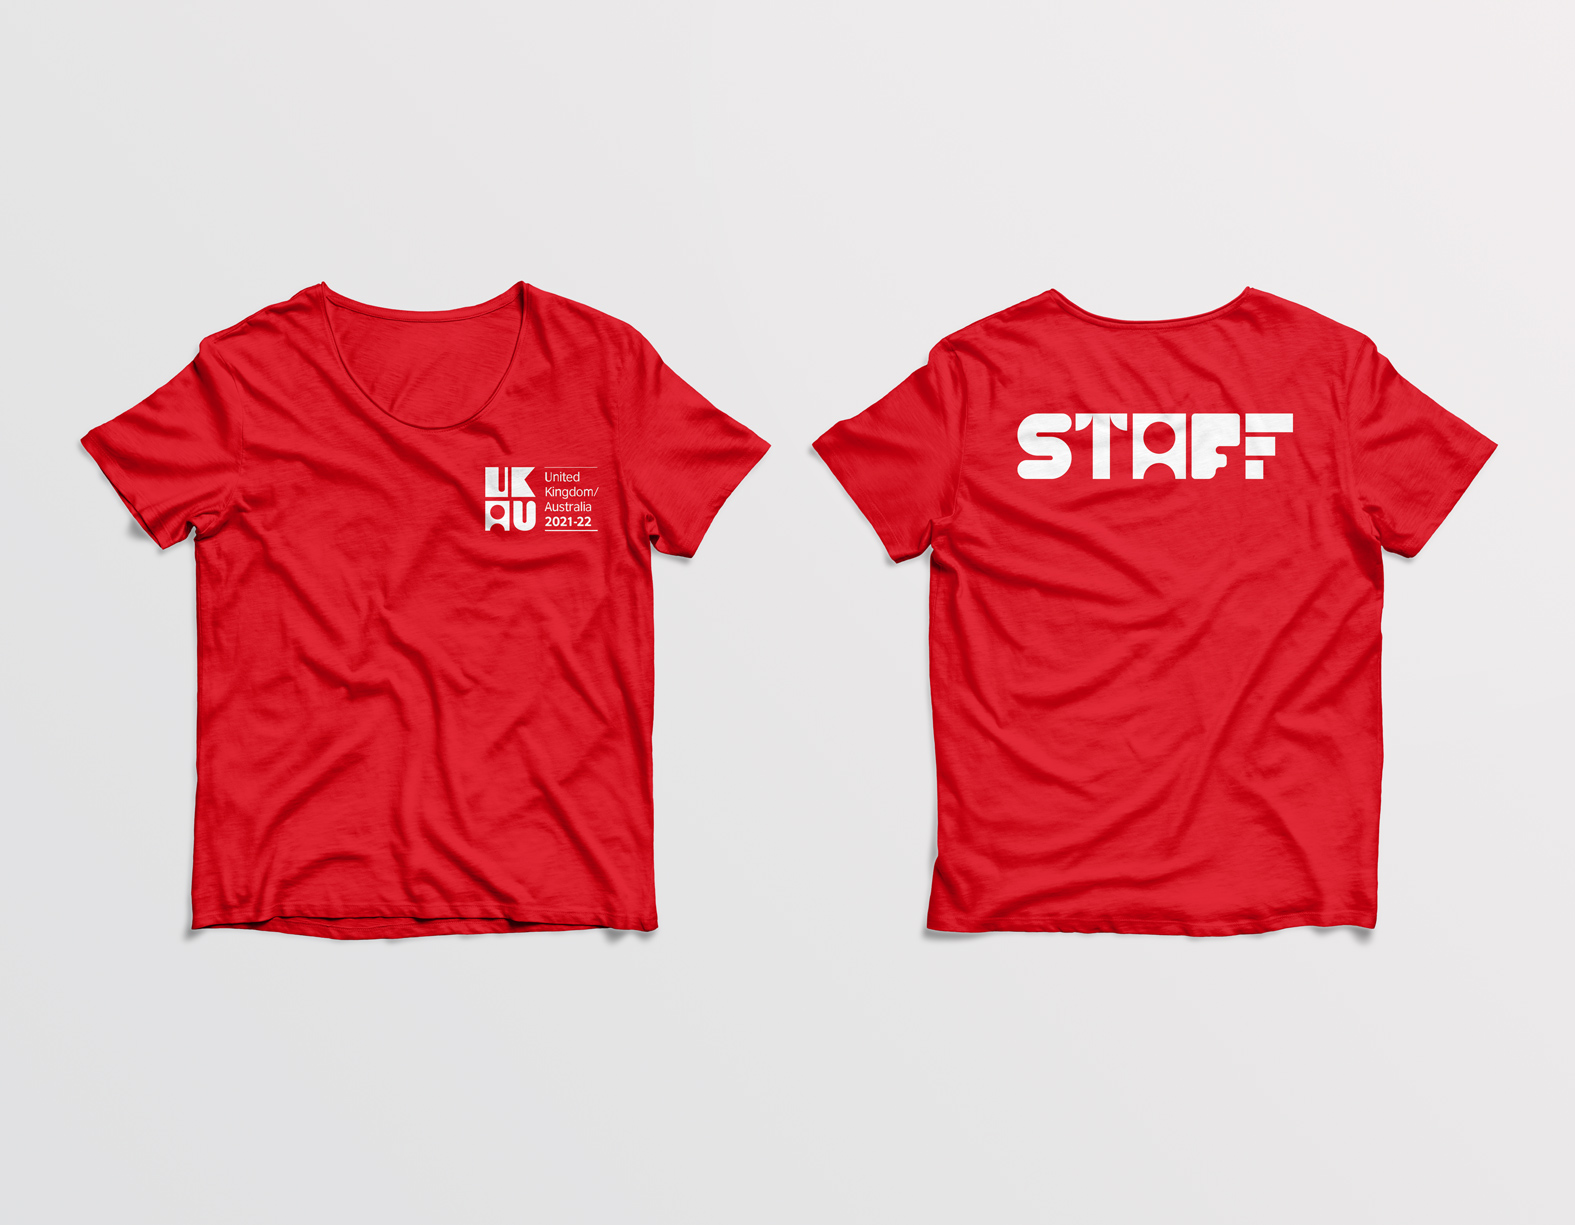 staff t-shirt front and back